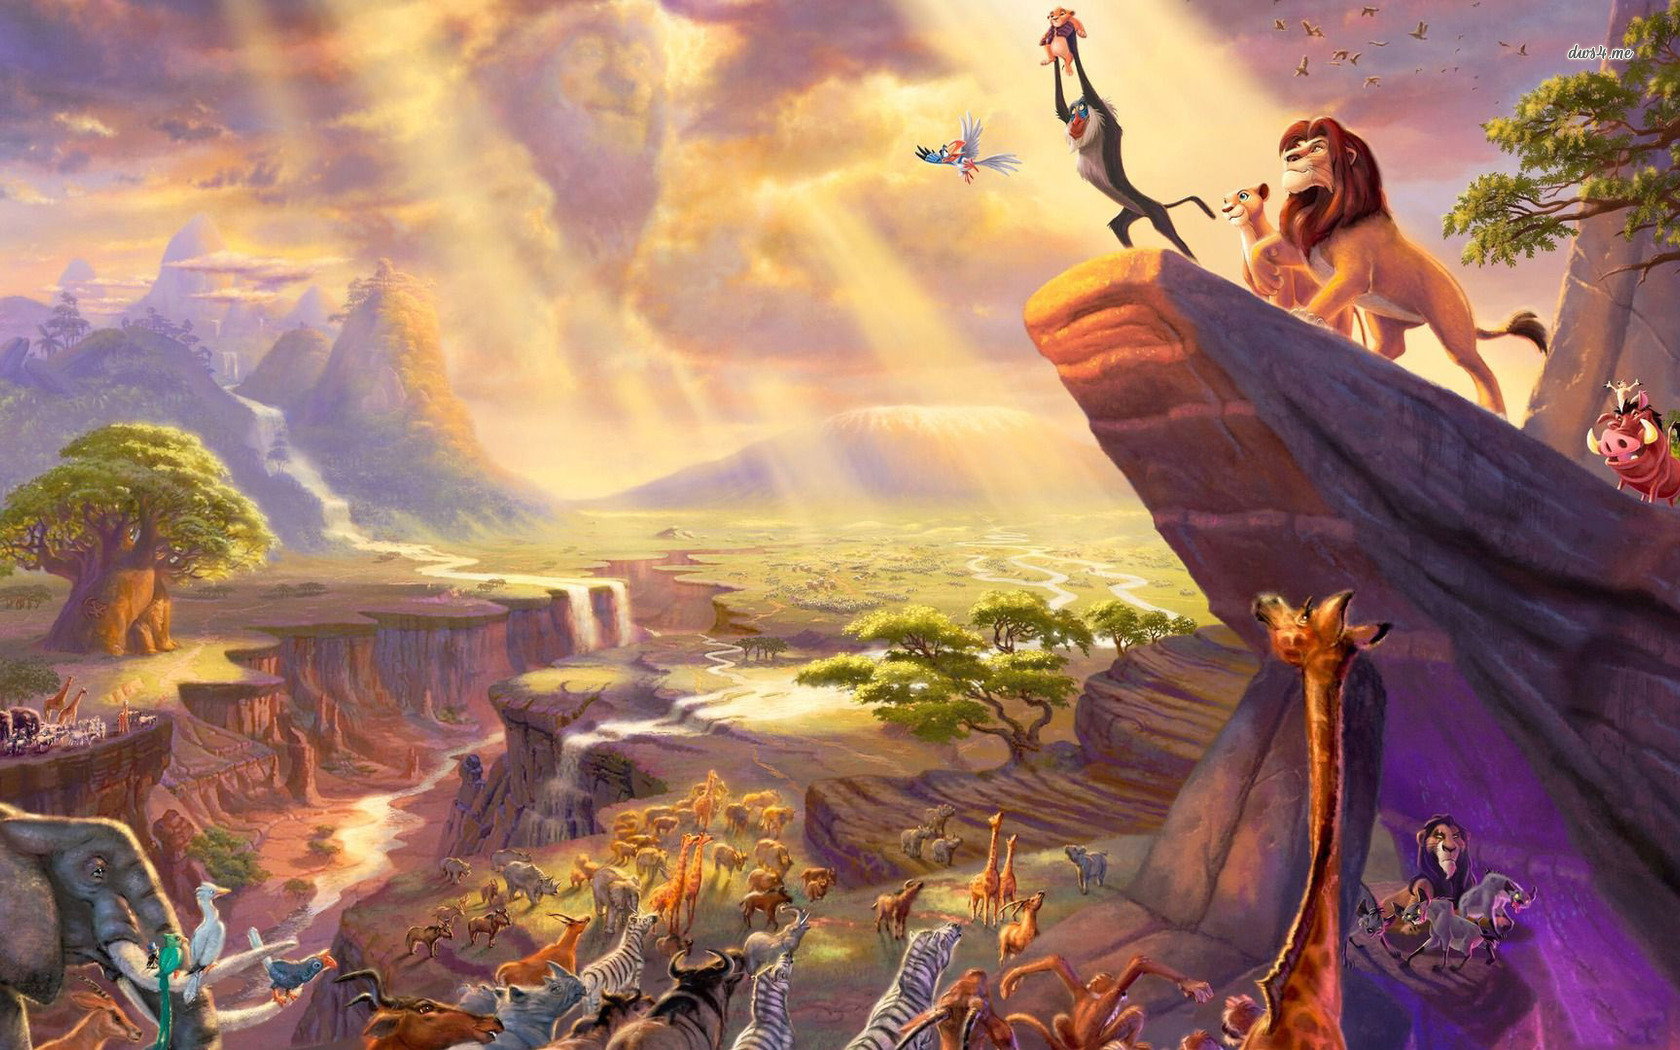 The Lion King Wallpaper Disney Wallpaper - Lion King High Resolution , HD Wallpaper & Backgrounds